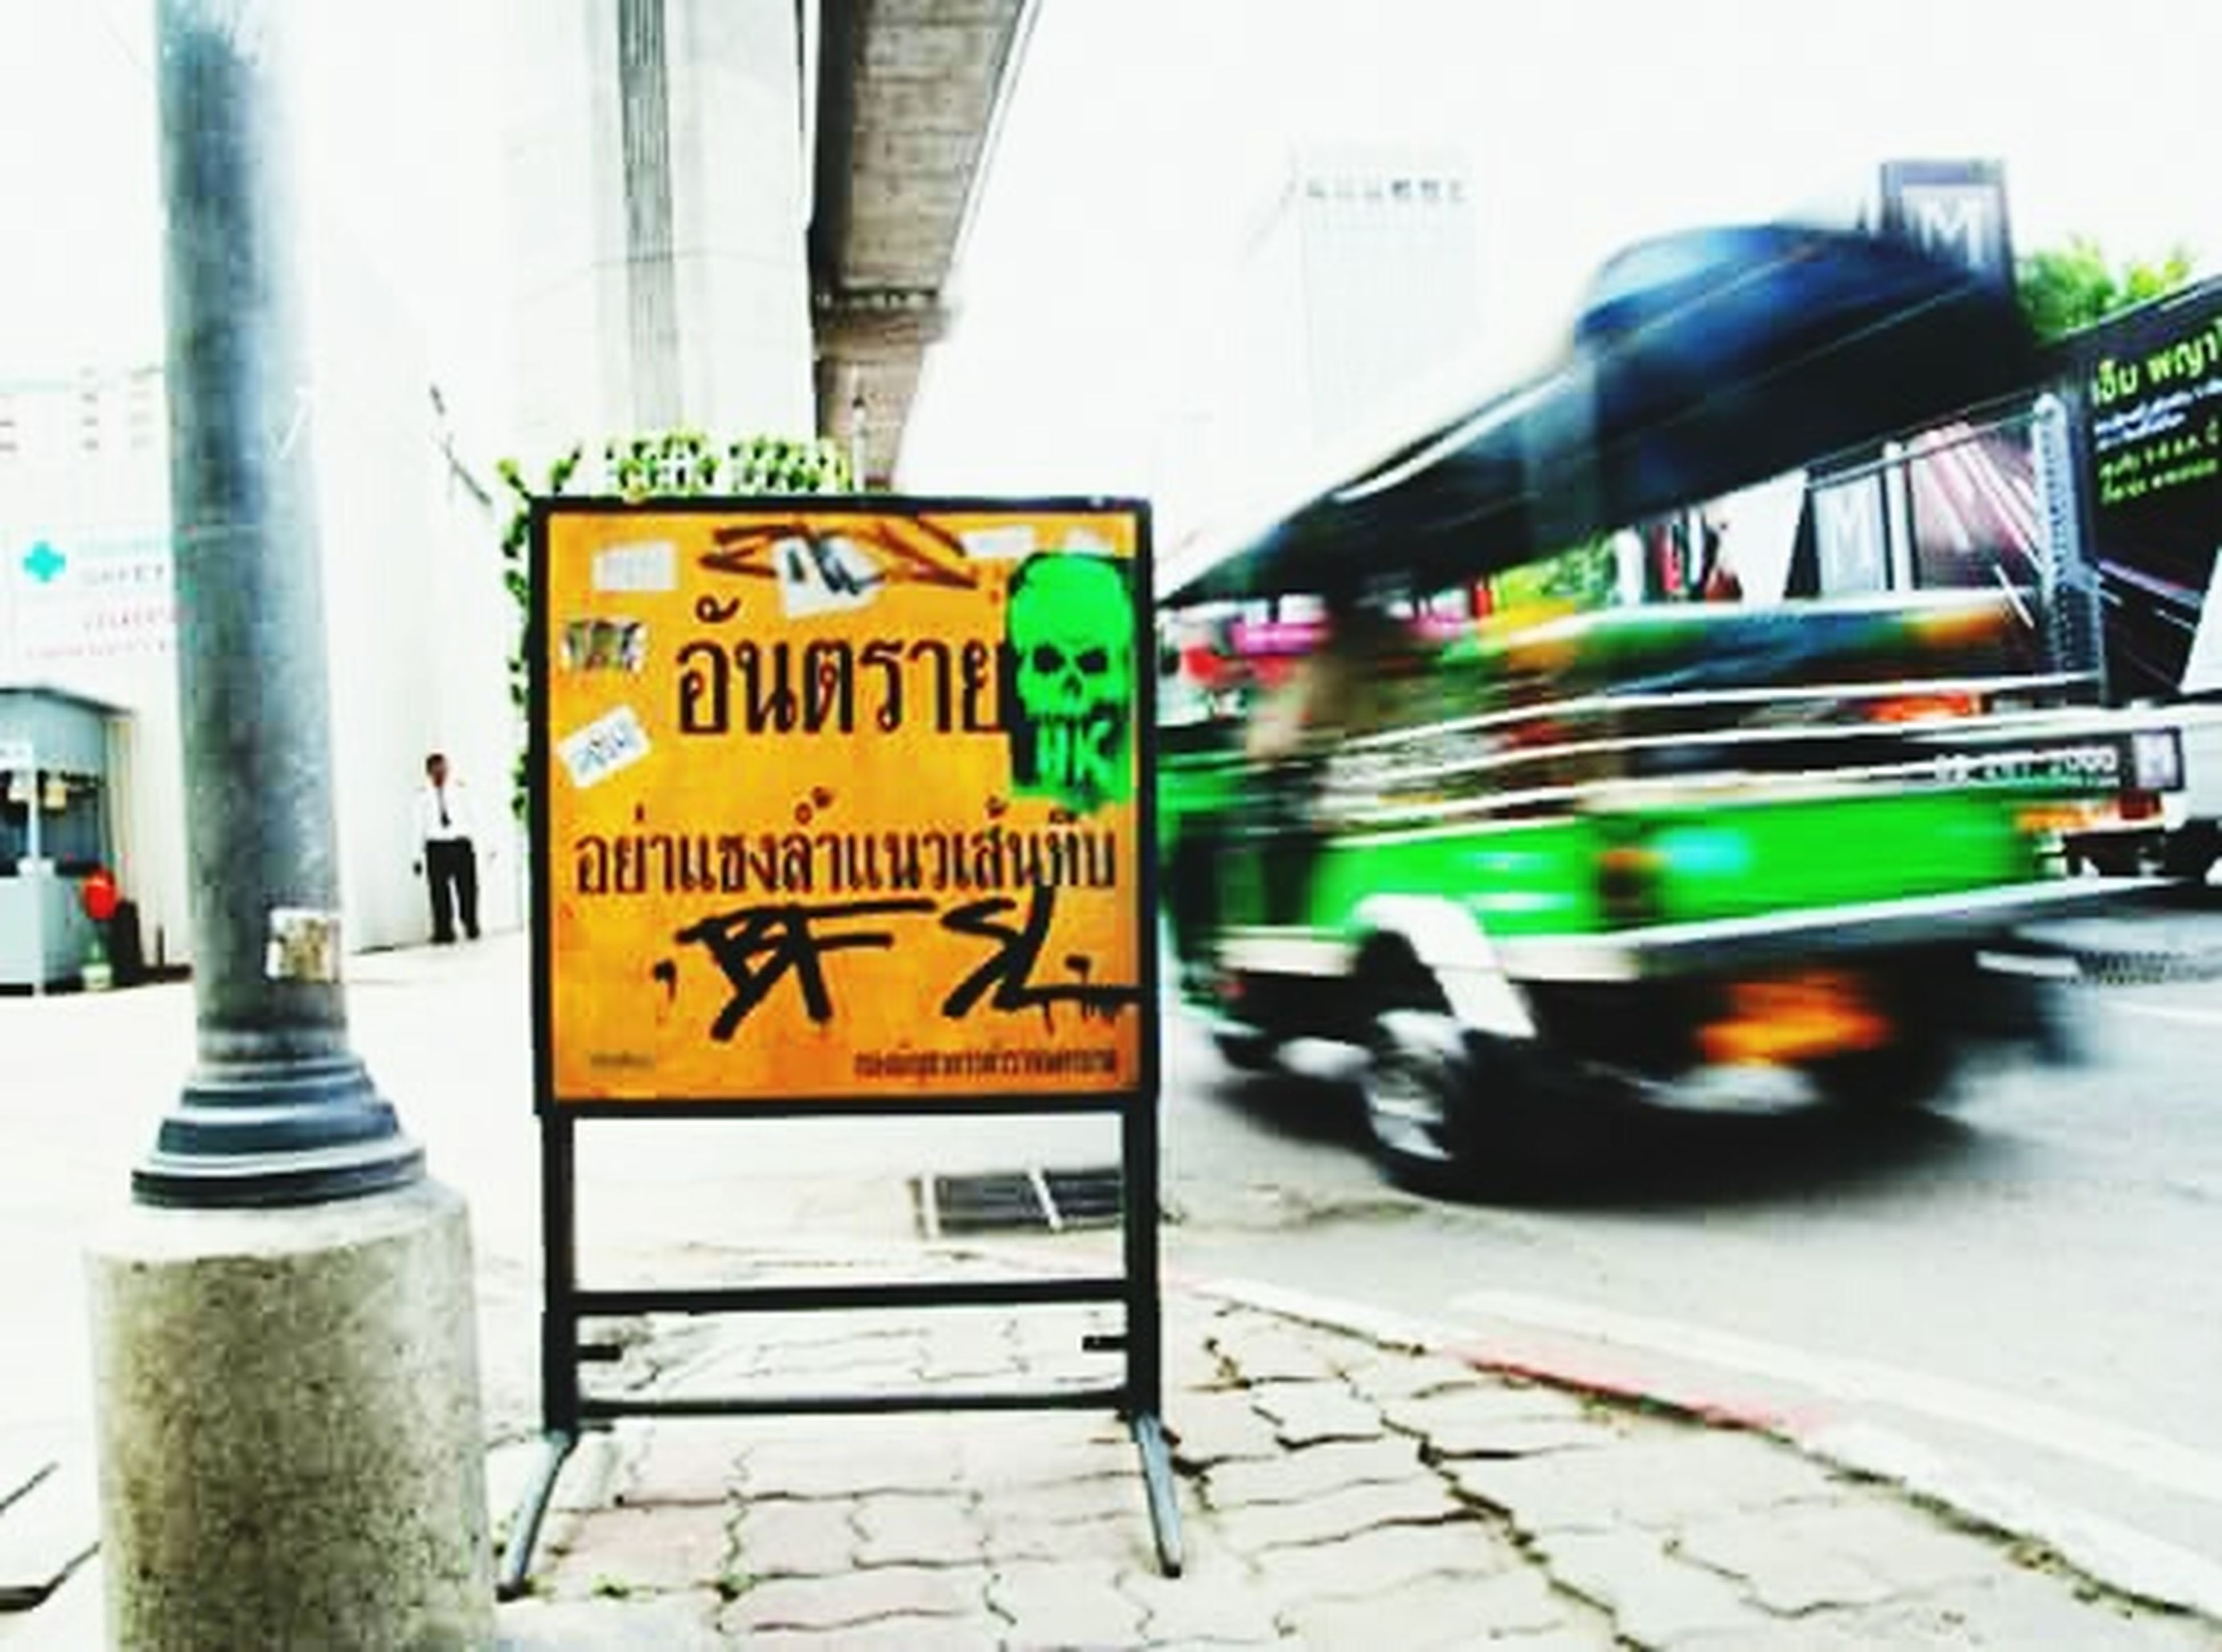 text, western script, built structure, architecture, communication, building exterior, city, transportation, street, information sign, city life, blurred motion, non-western script, incidental people, sign, road sign, road, motion, yellow, city street